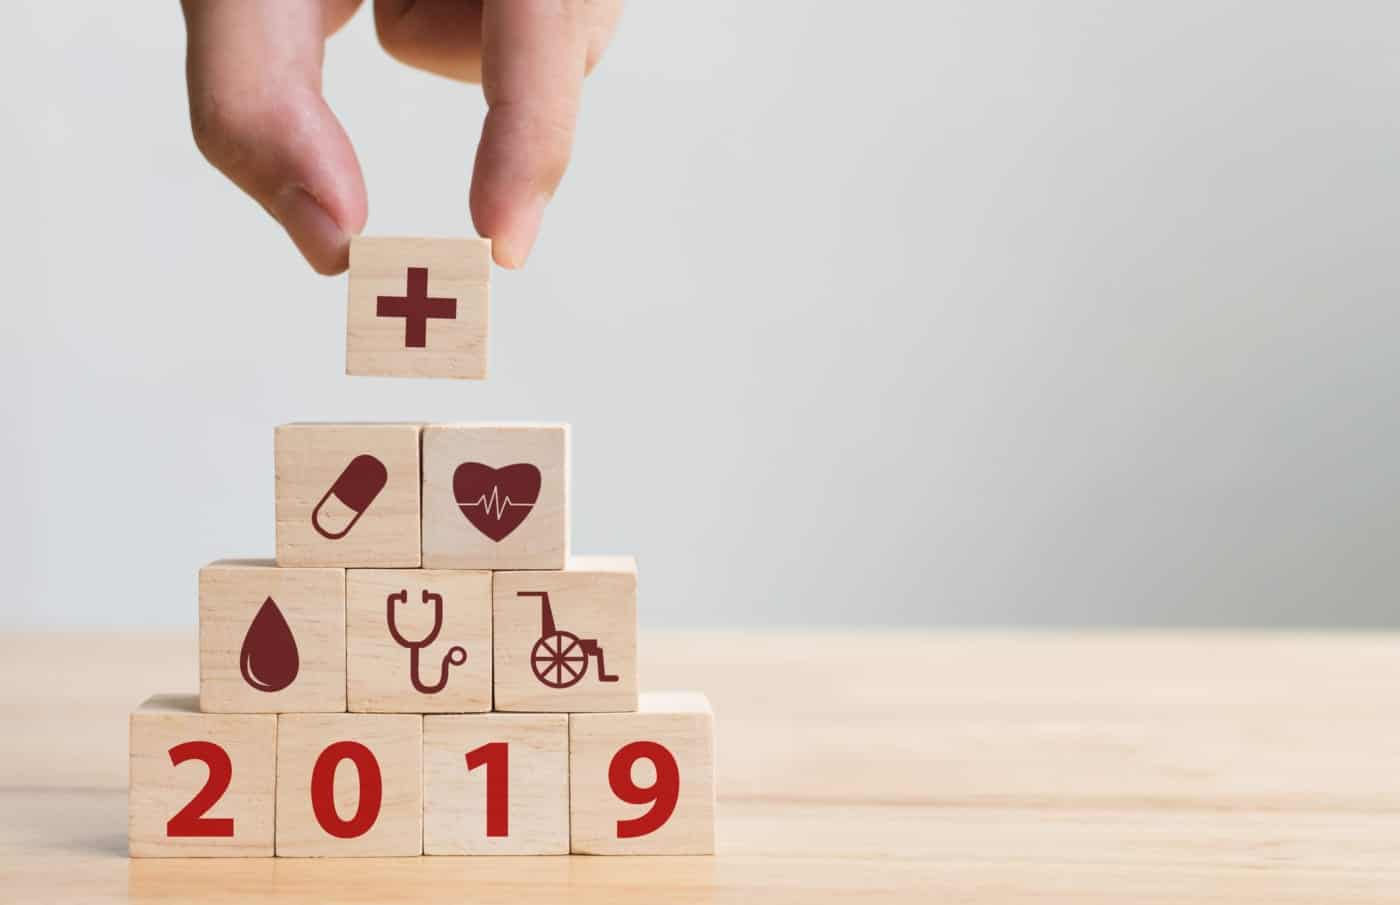 Hand arranging wood block stacking with healthcare medical icons representing the South African Company Culture Health Index 2019